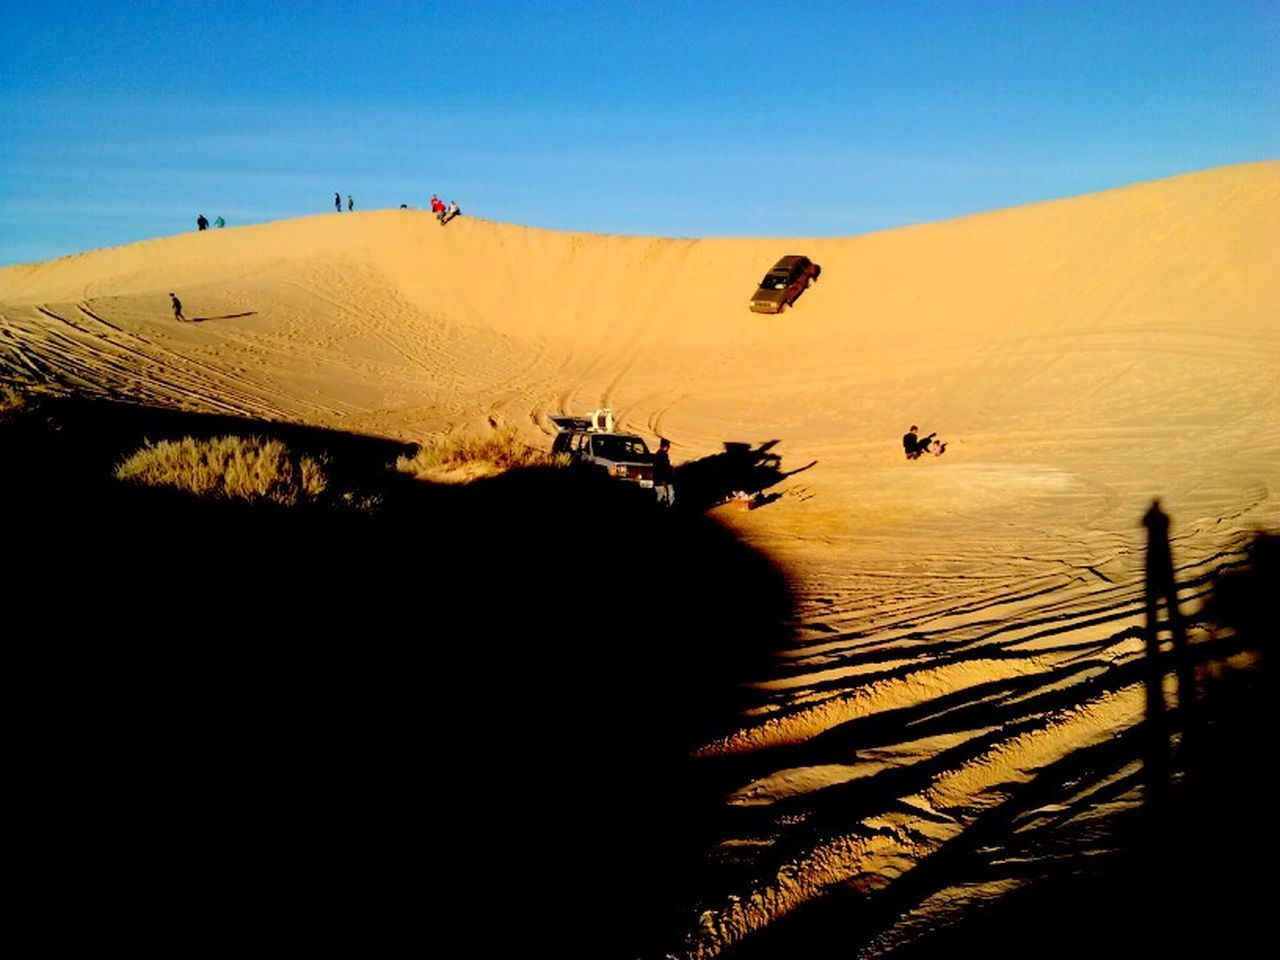 sand, sand dune, outdoors, desert, silhouette, landscape, clear sky, nature, sunlight, shadow, day, sky, people